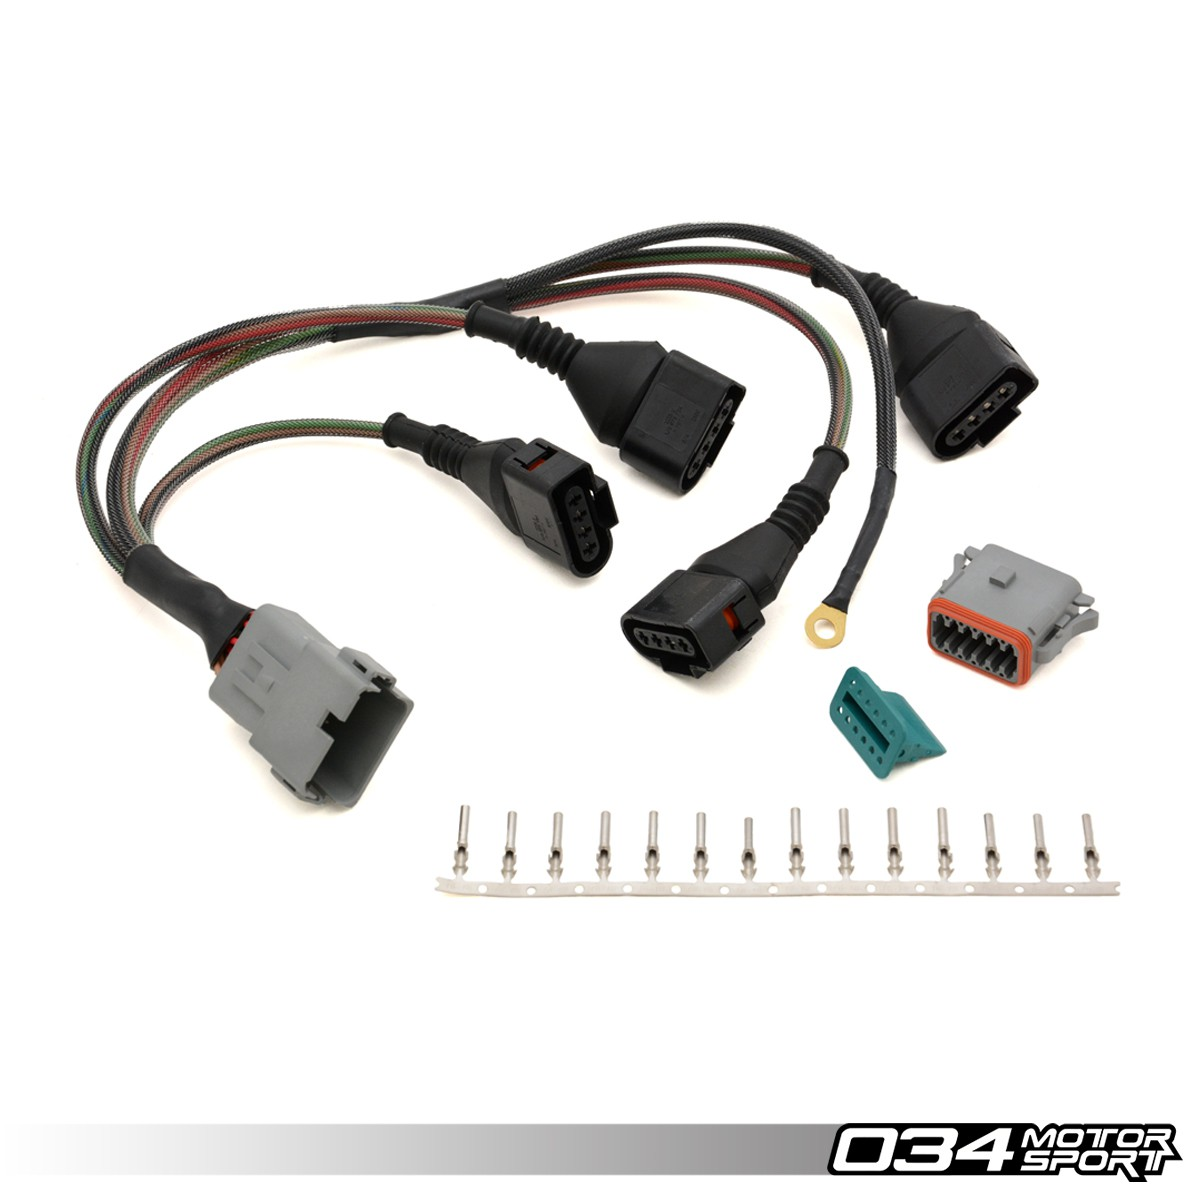 repair update harness audi volkswagen 18t with 4 wire coils 034motorsport 034 701 0004 2 repair update harness, audi volkswagen 1 8t with 4 wire coils Wire Harness Maintance at readyjetset.co